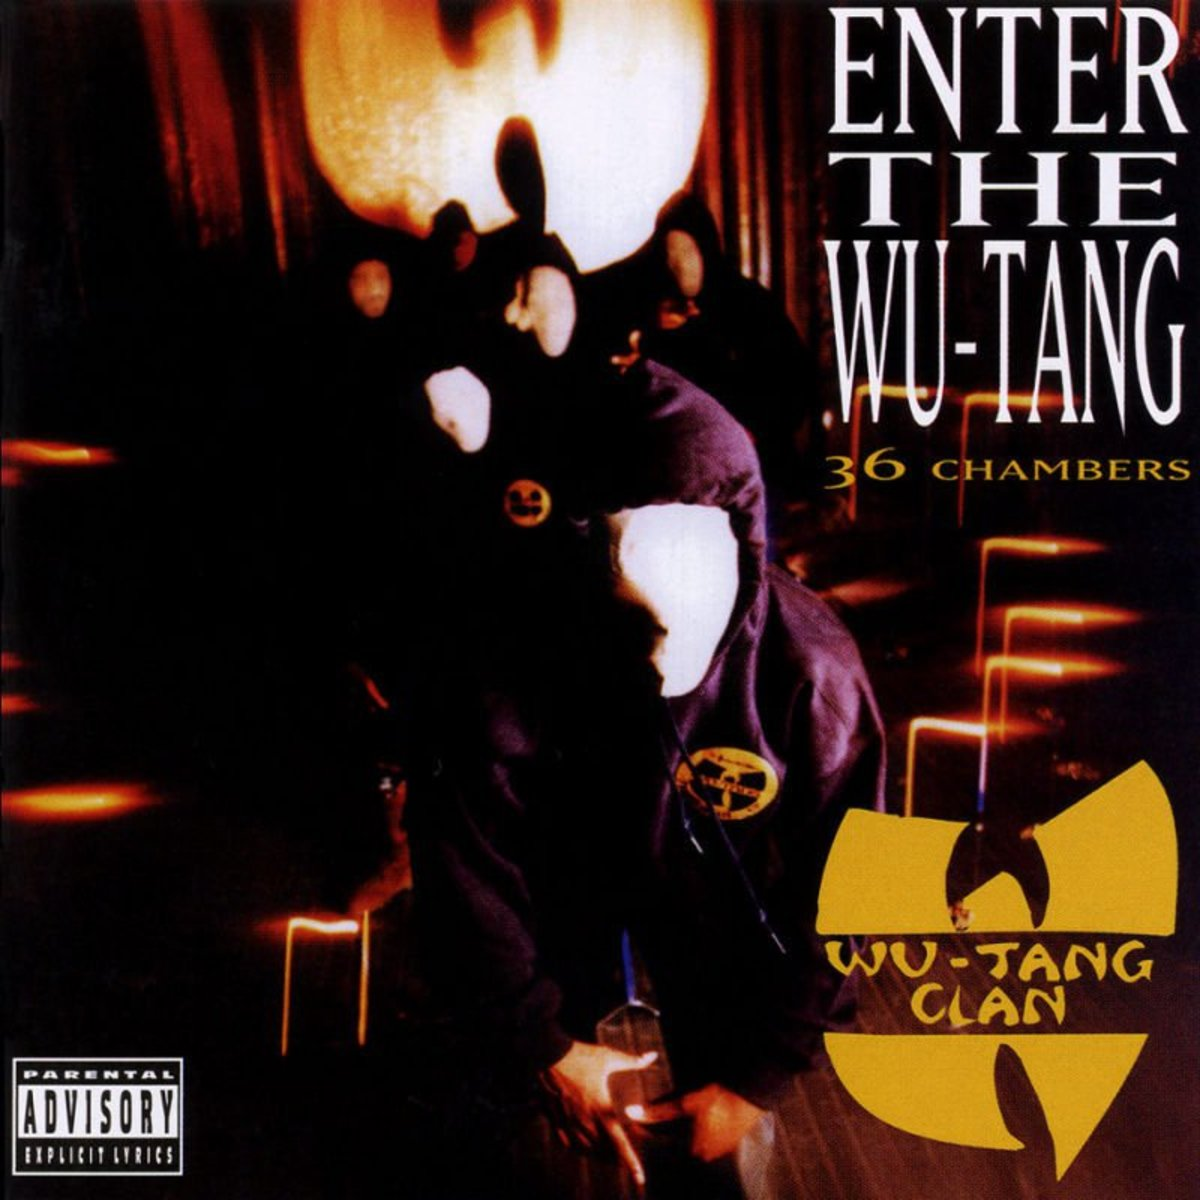 Cover art for the debut studio album of the Wu-Tang Clan titled Enter The Wu-Tang (36 Chambers). Photo: BMG Entertainment.